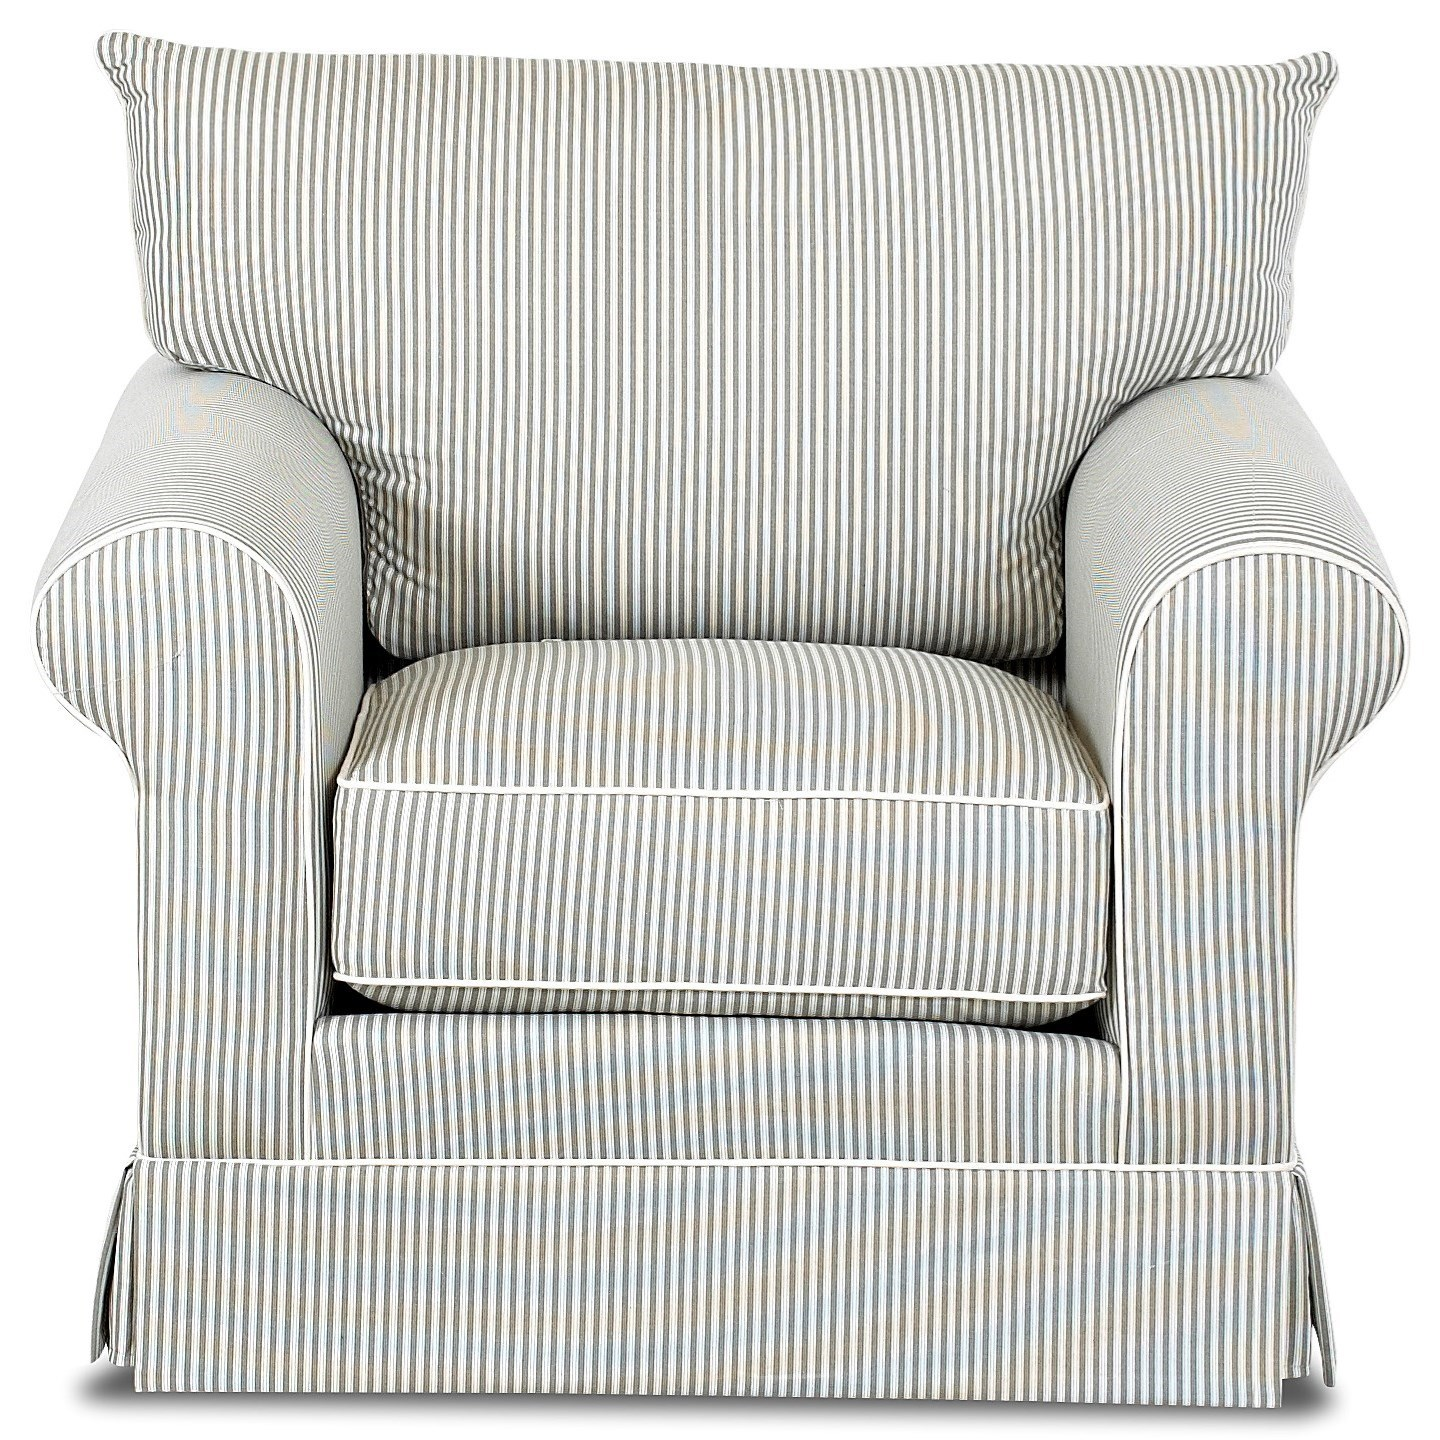 Transitional Chair with Rolled Arms